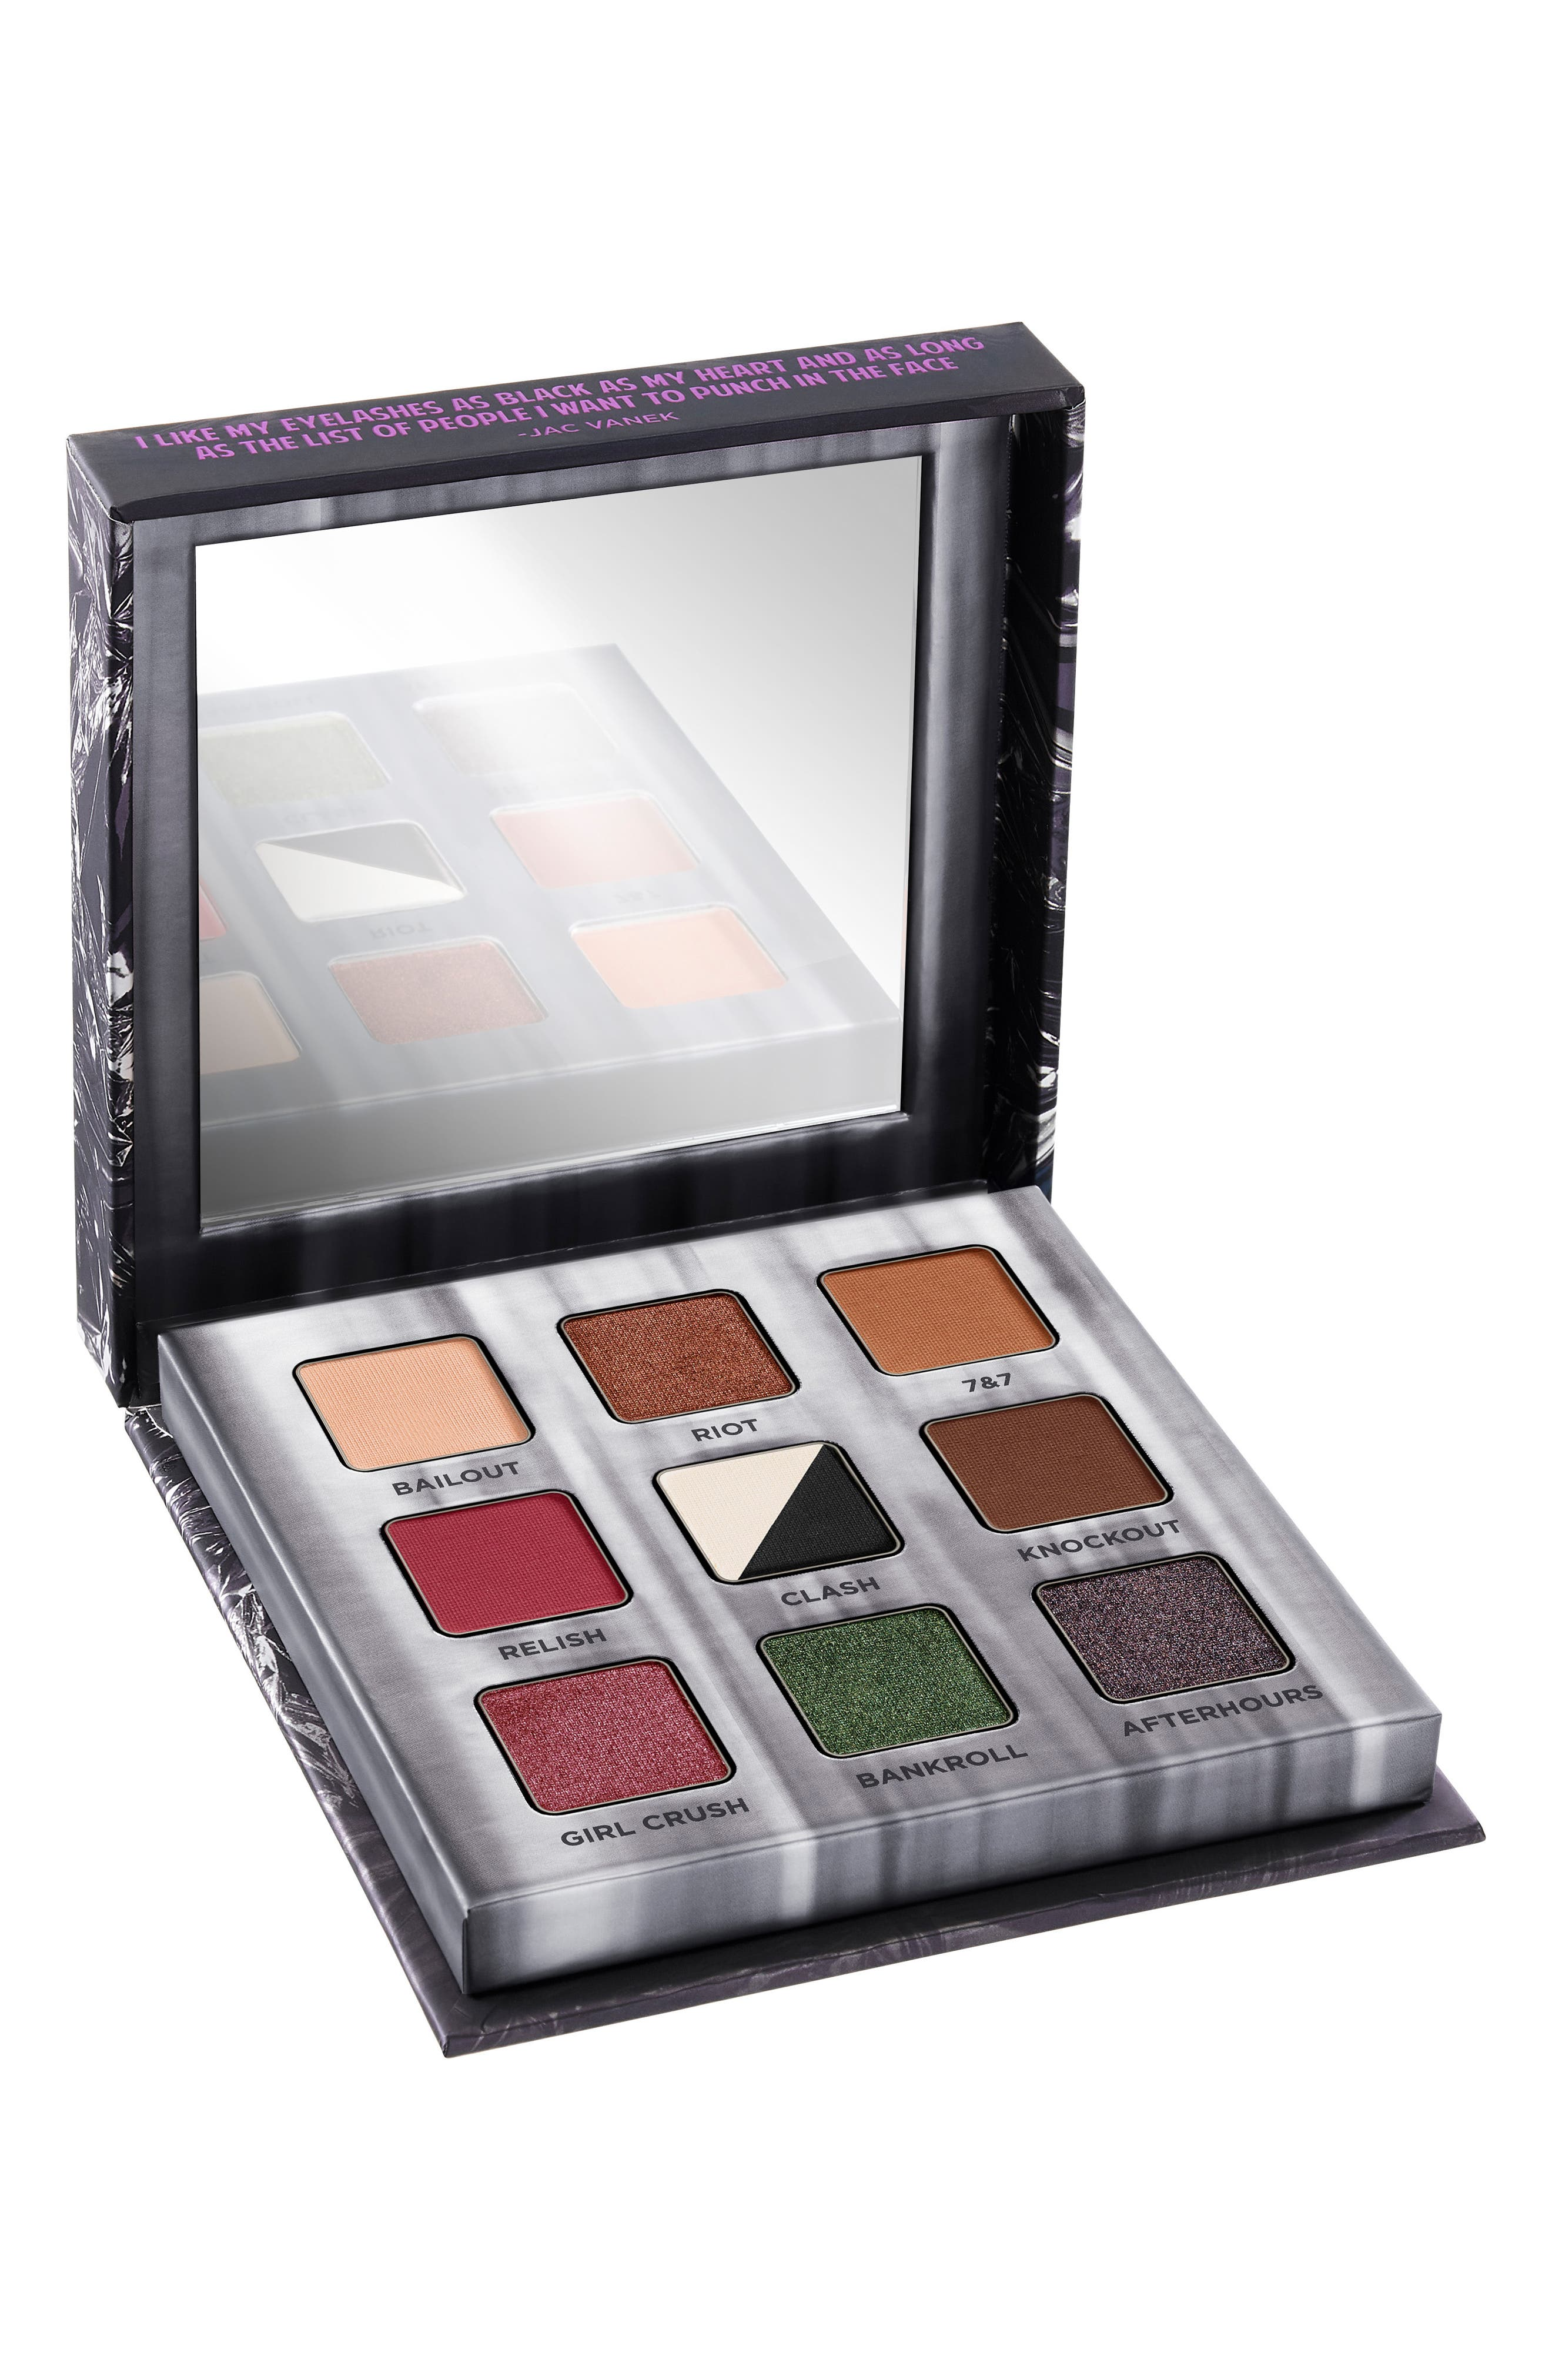 Troublemaker Eyeshadow Palette,                             Alternate thumbnail 2, color,                             000